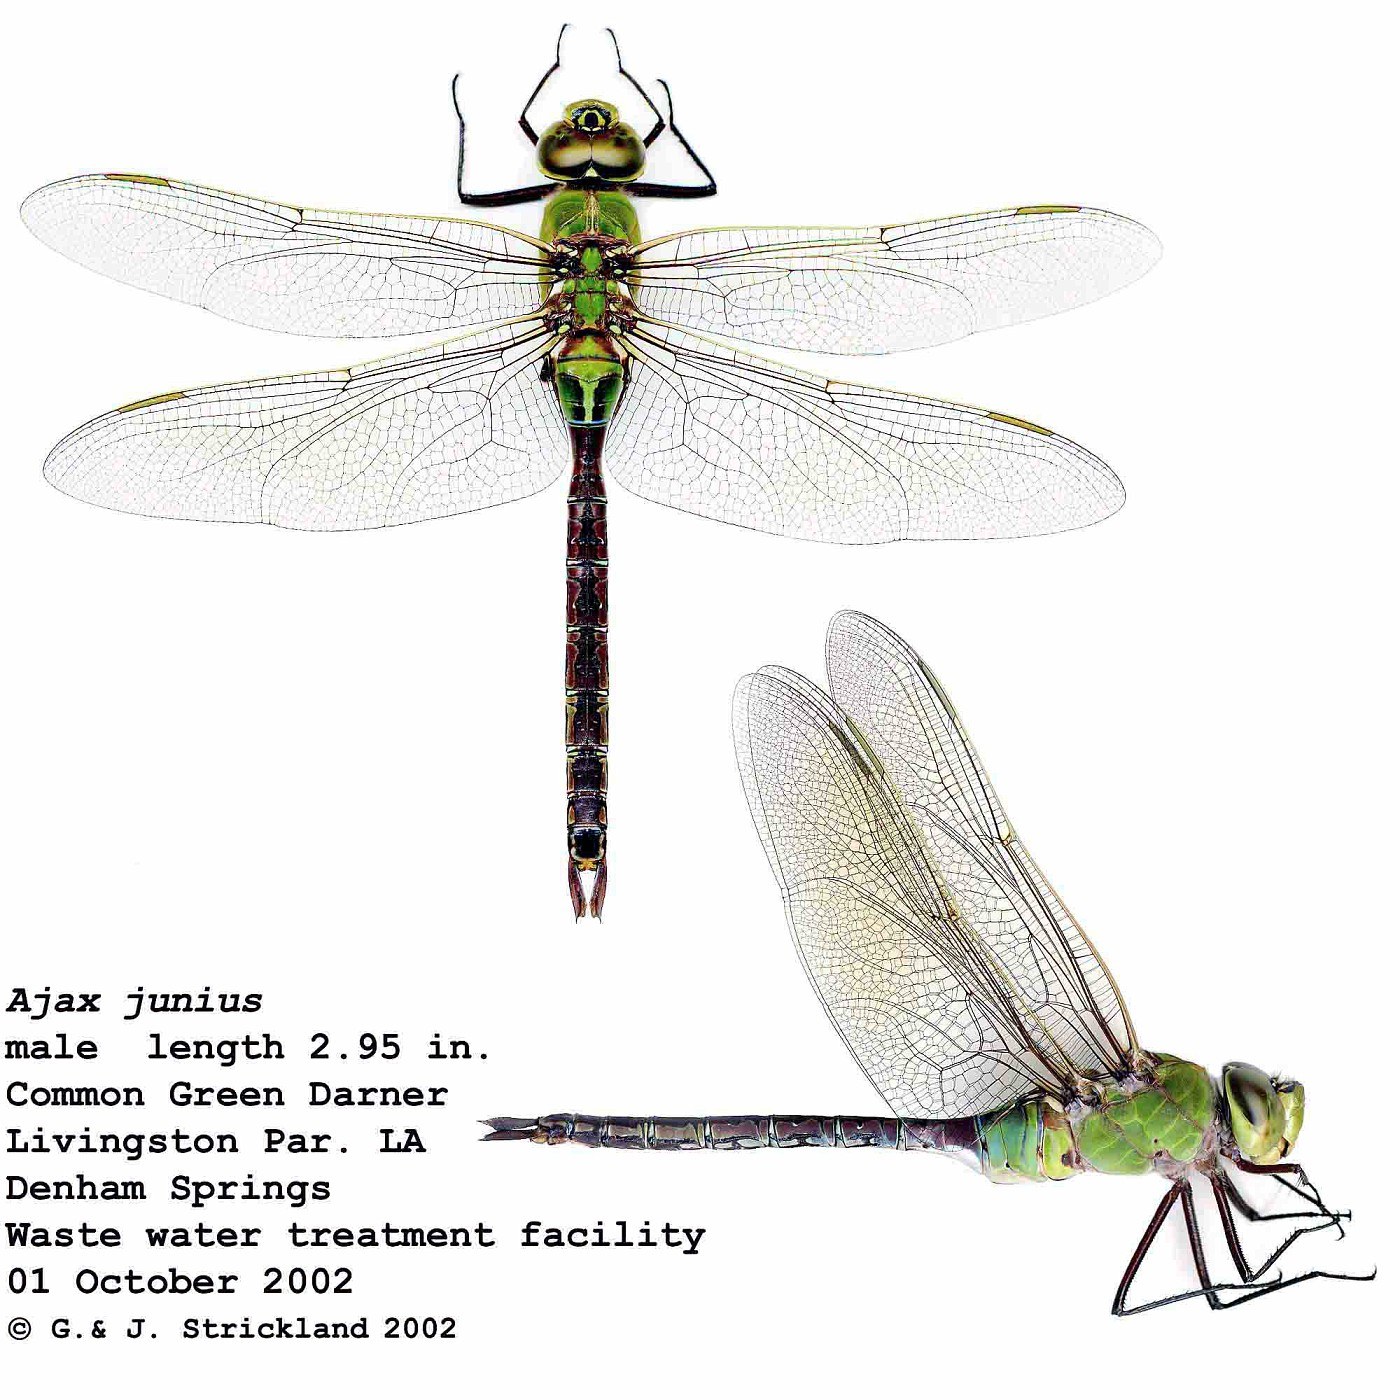 A. Junius male